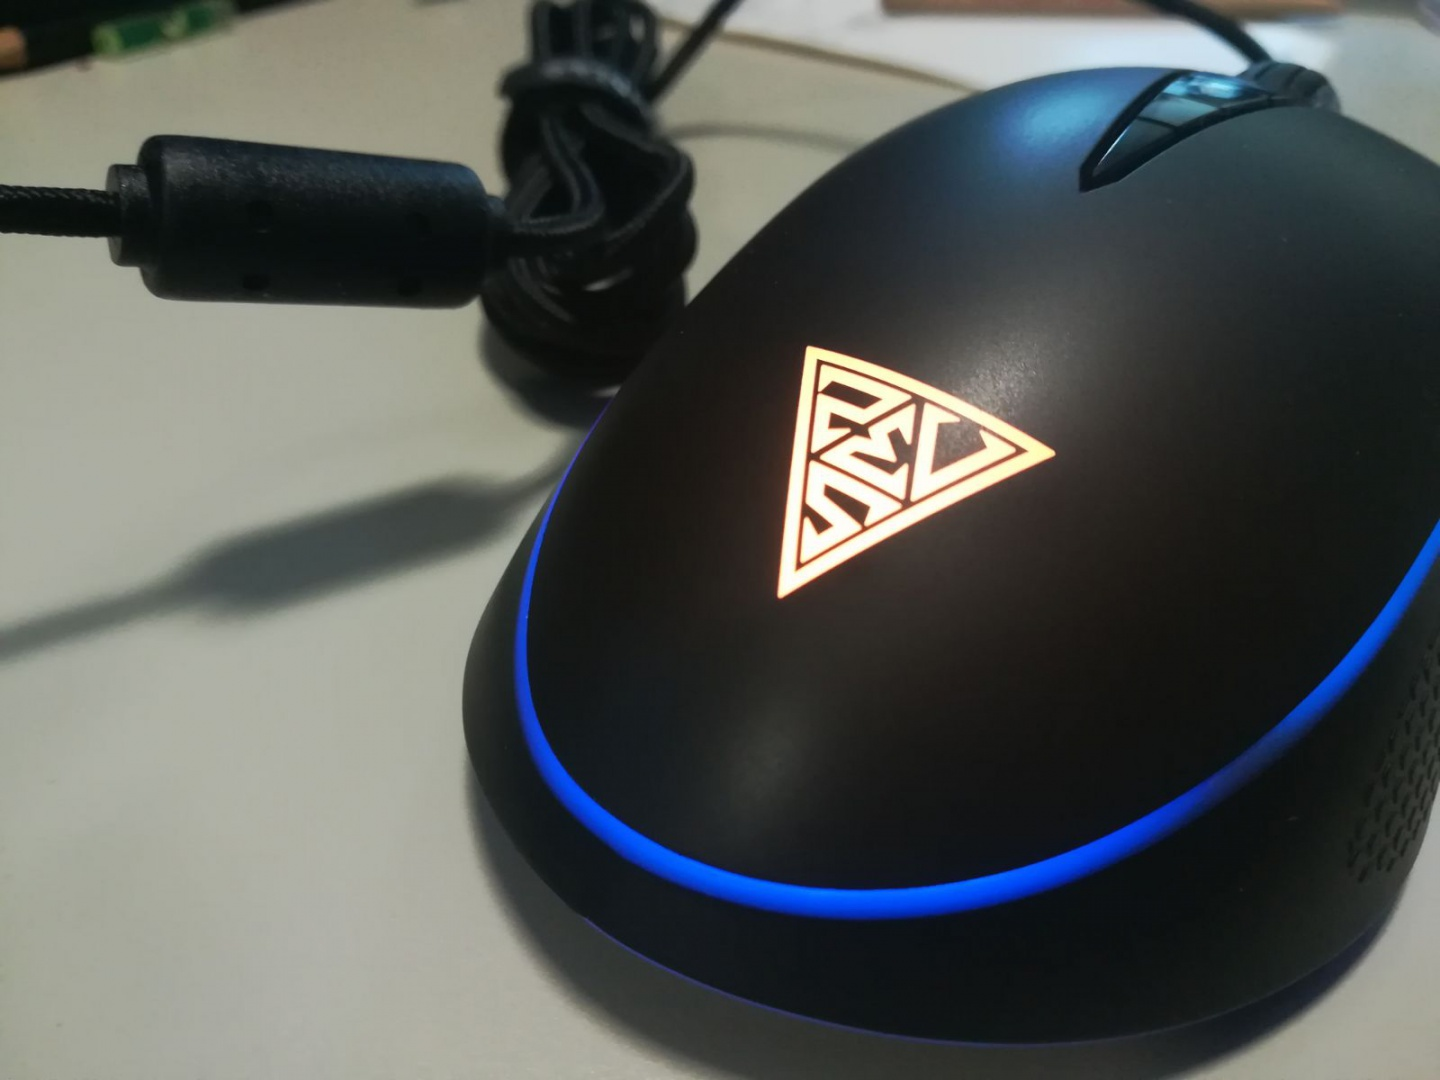 Gamdias Zeus P1 Pc Speciale Gamesurfit Mouse Immagine 2